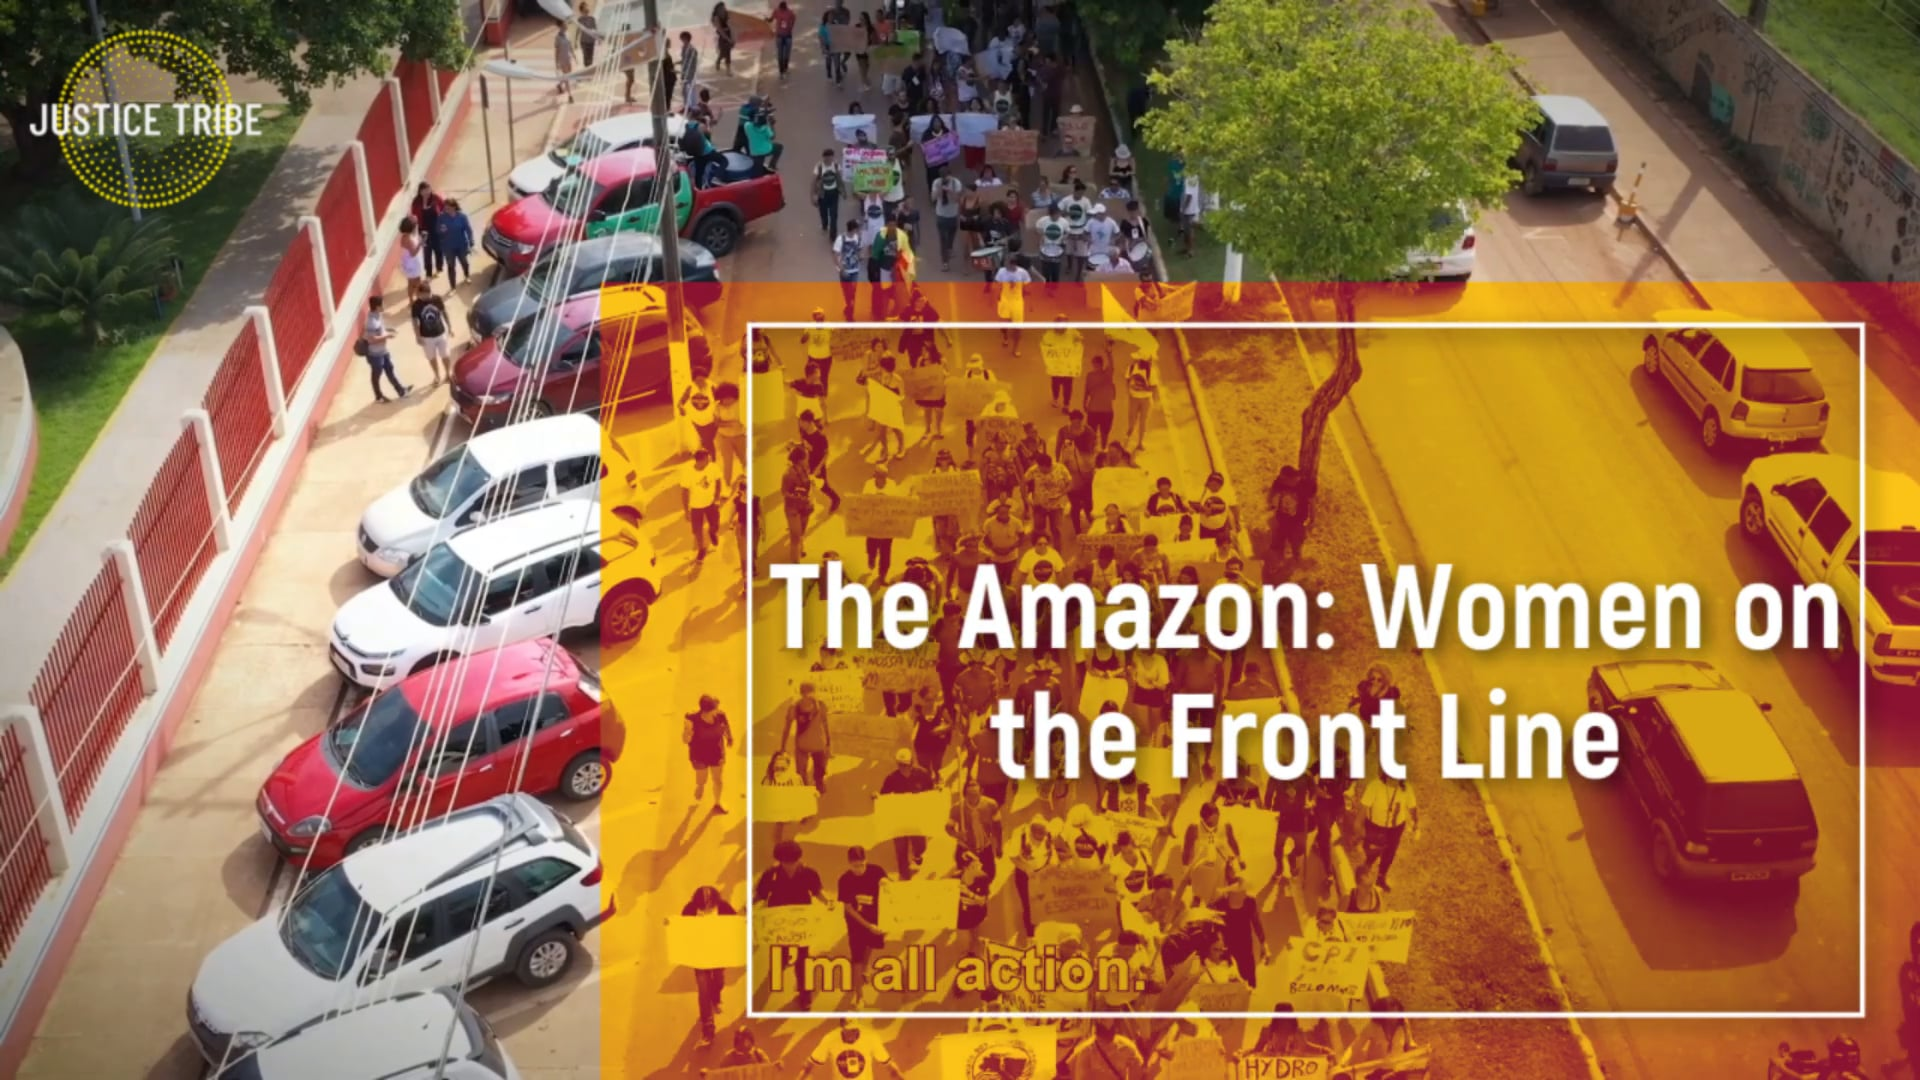 The Amazon: Women on the Front Line